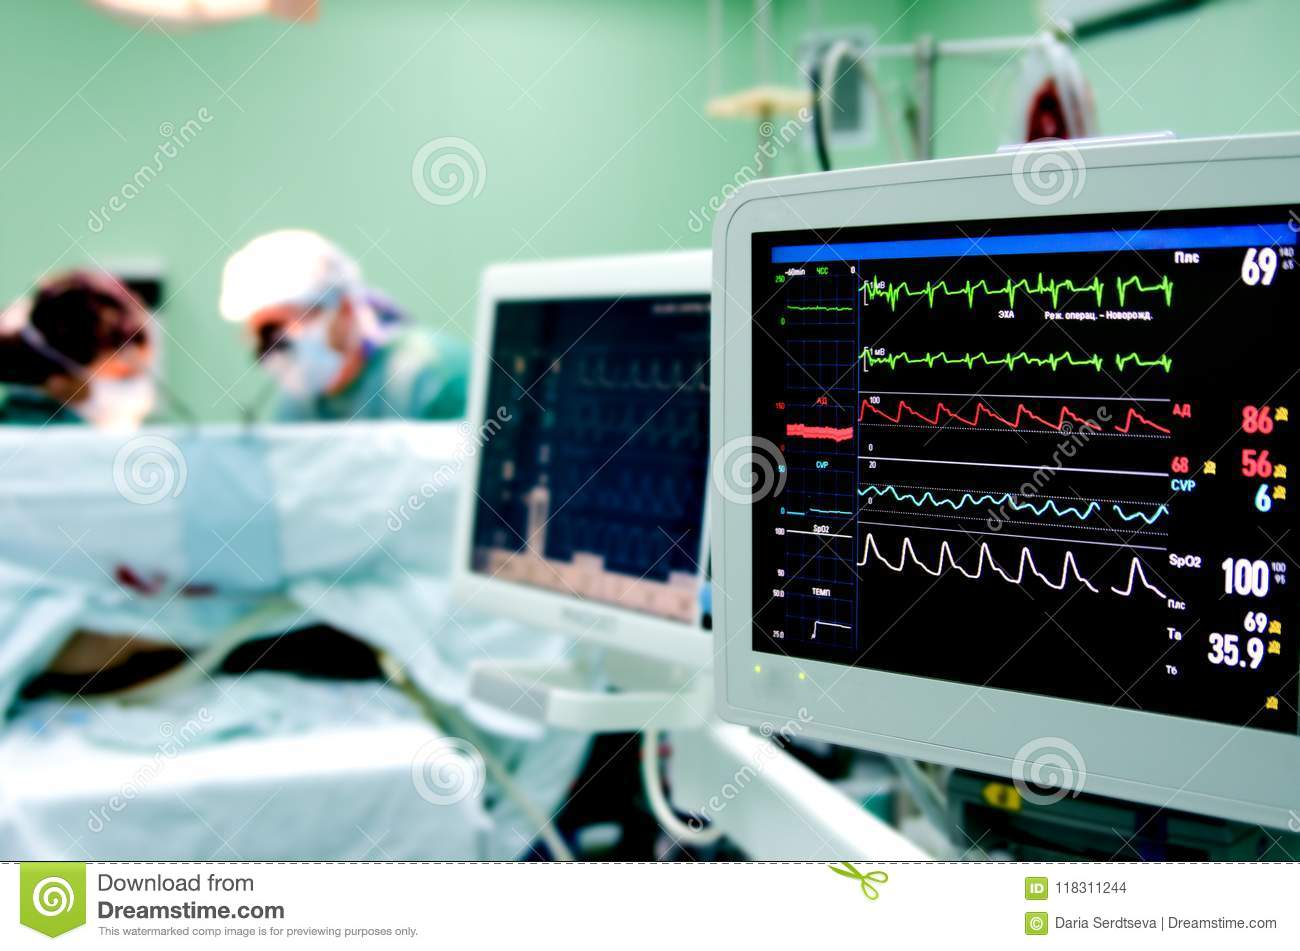 Monitoring Of ECG, Blood Pressure, Saturation Of The Patient During